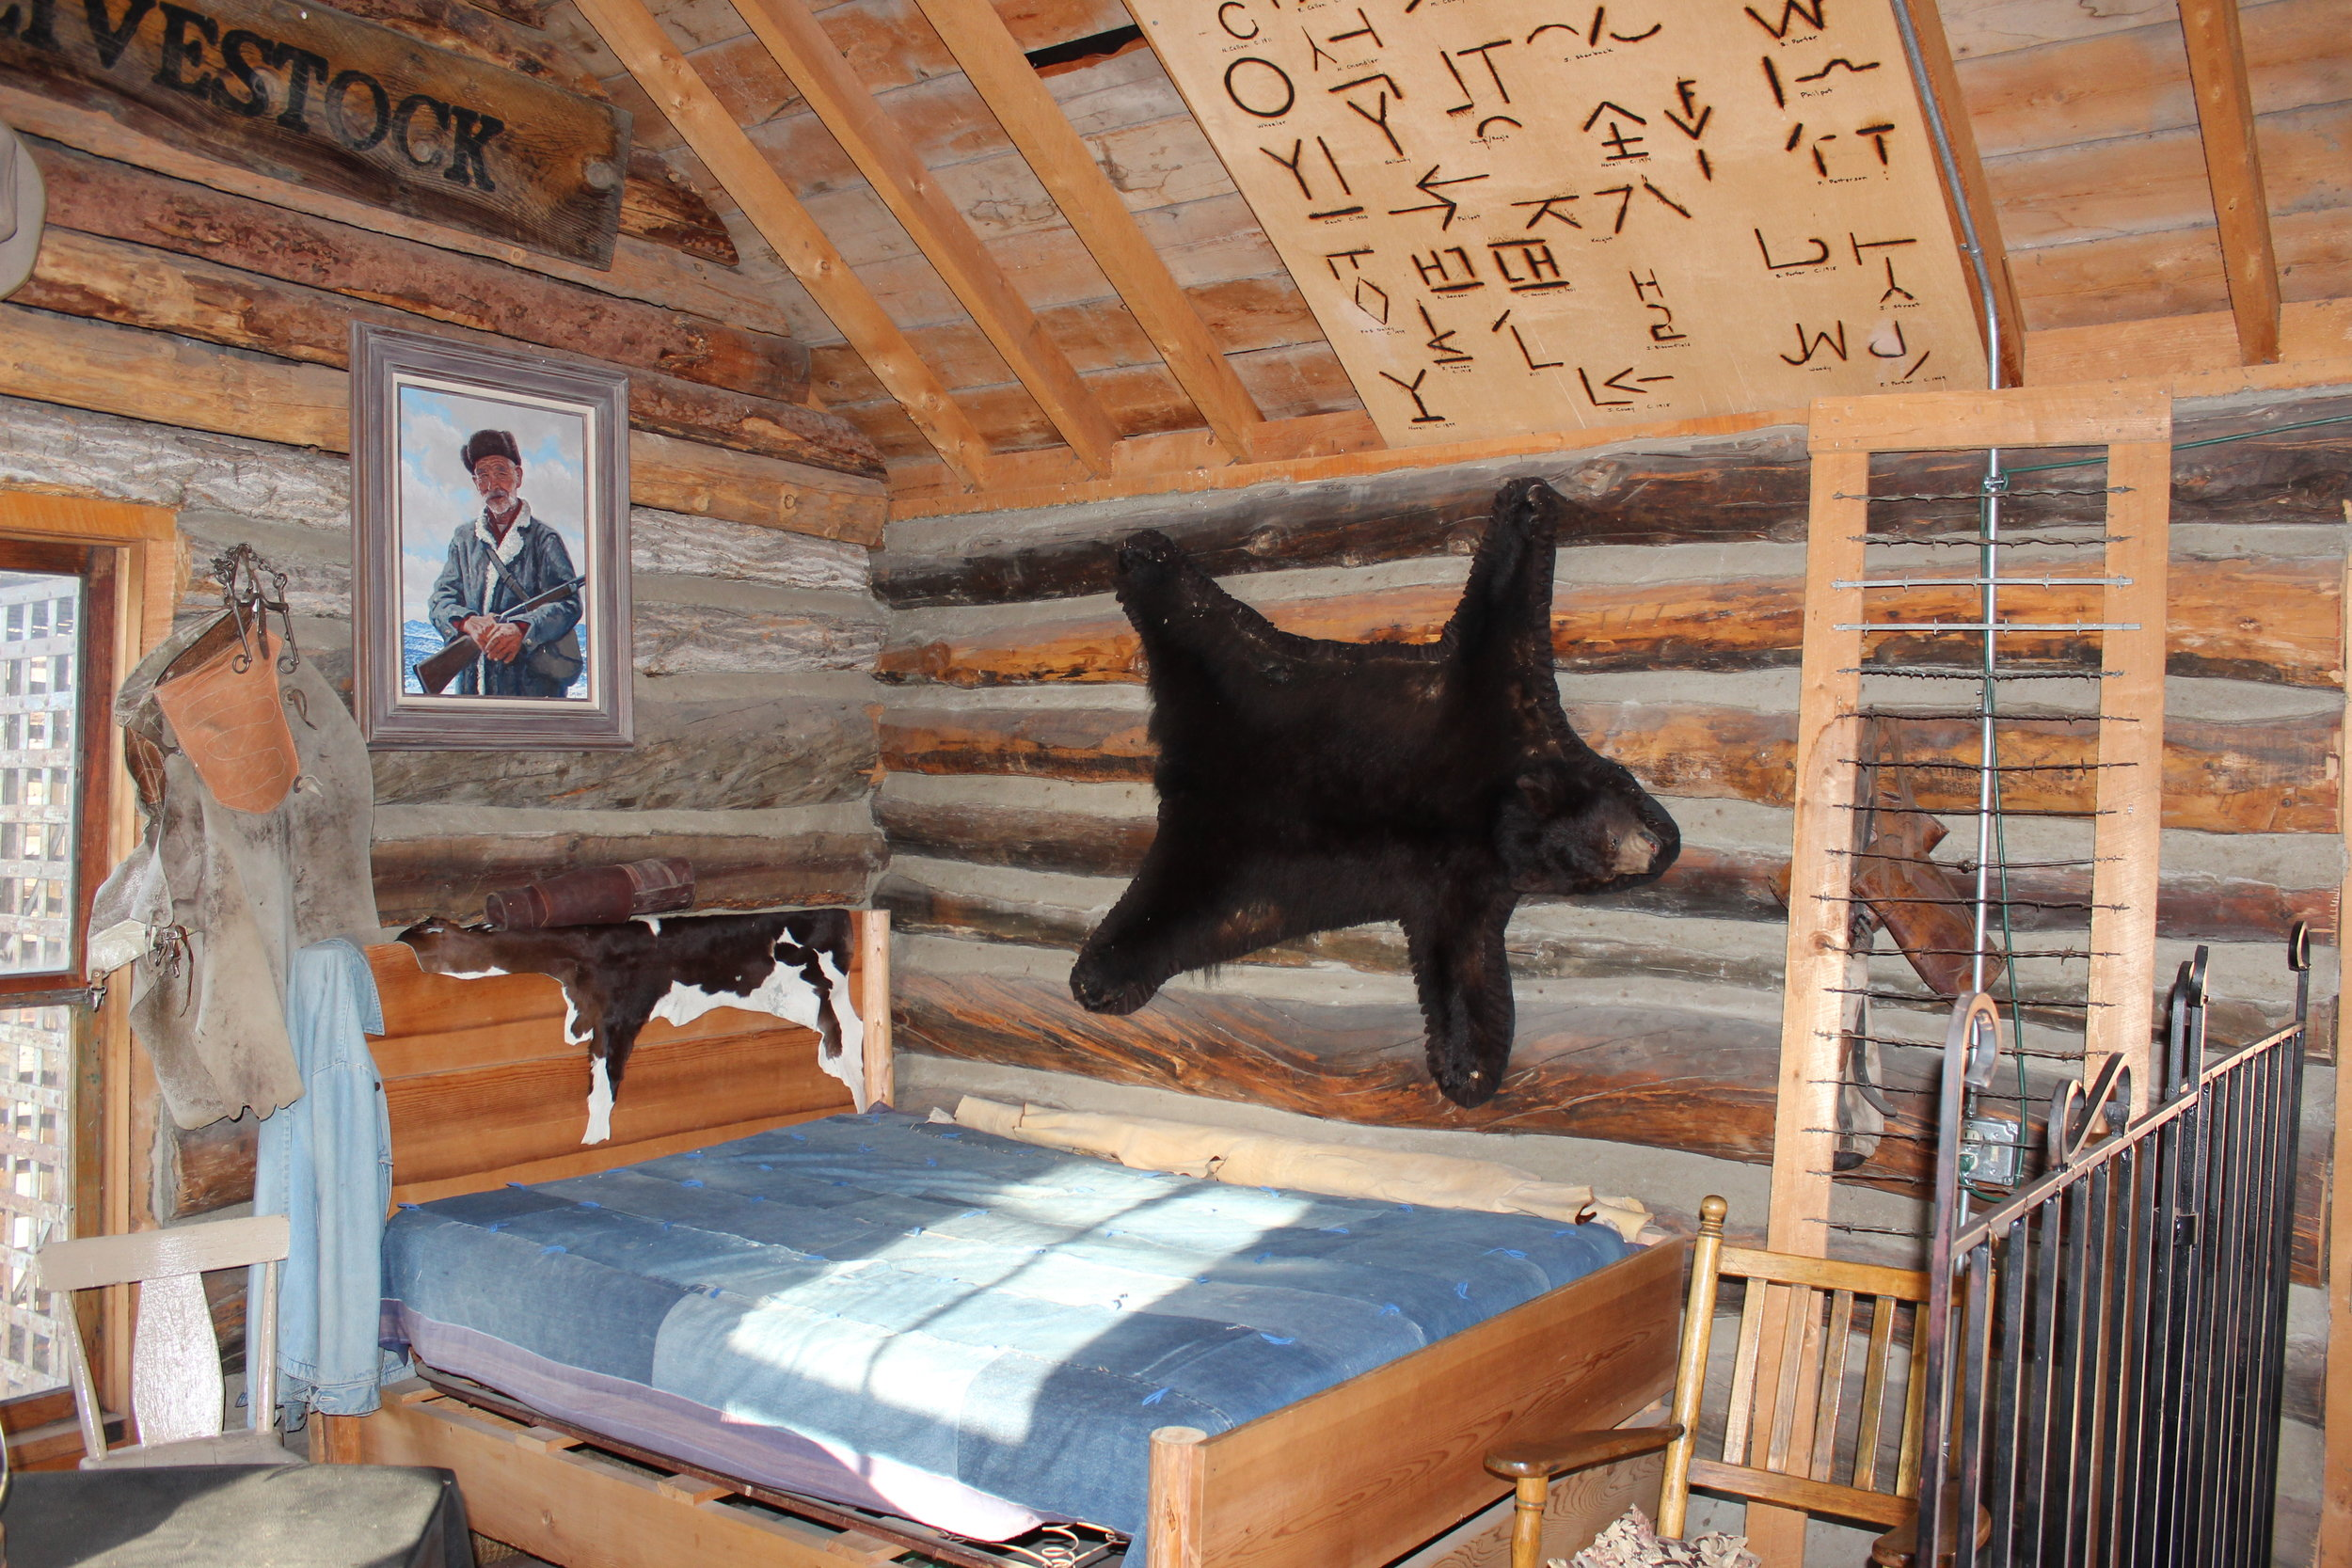 Brands from local families hang above the bed in the cowboy camp.